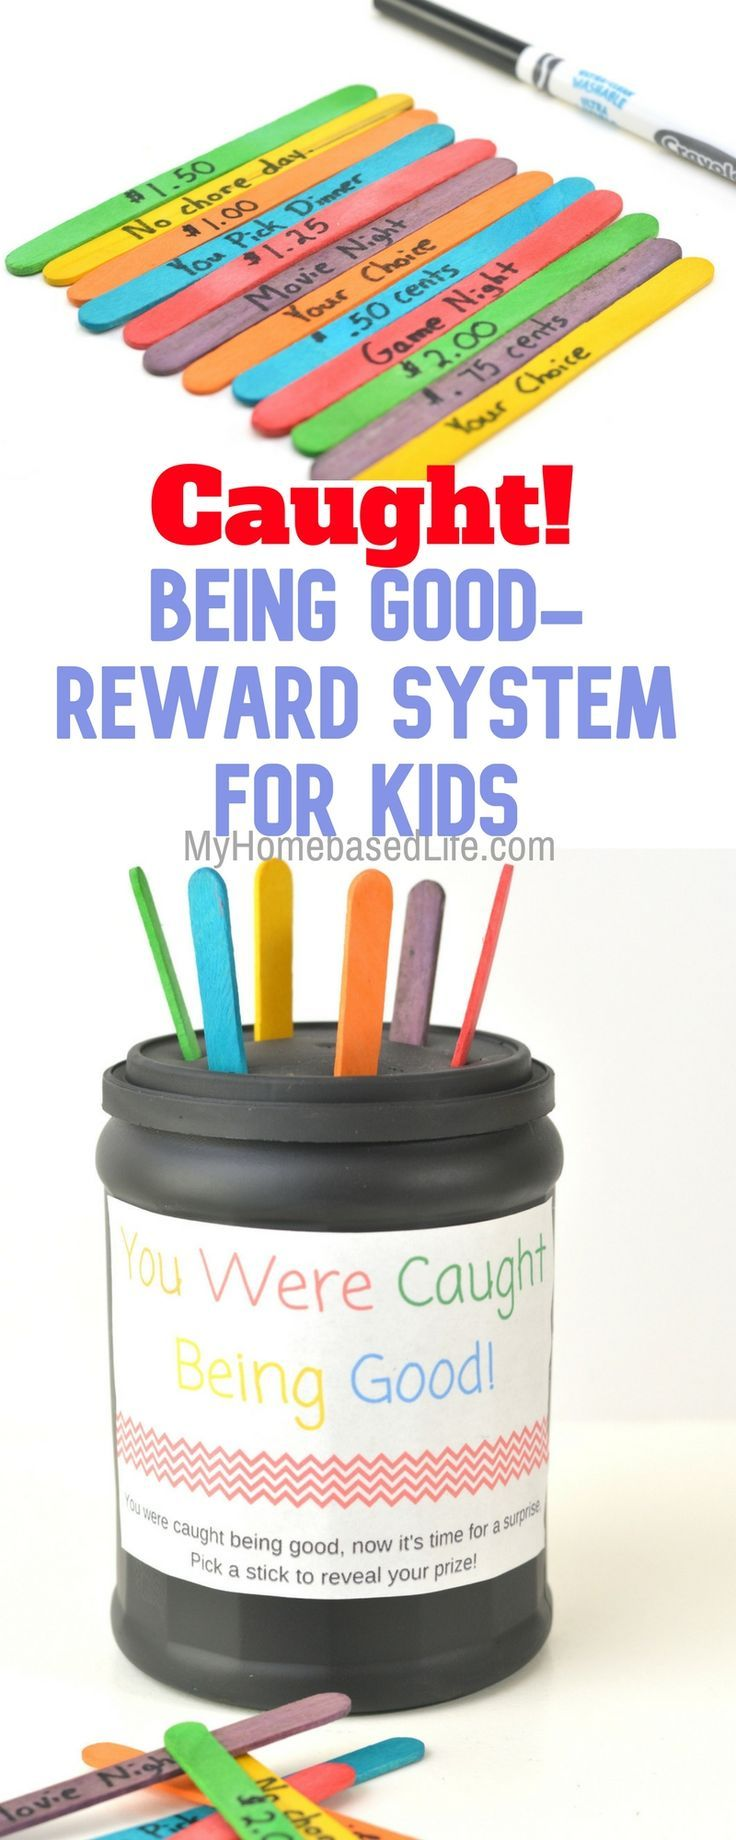 Discipline is all about rewards in addition to teaching what is right and wrong. Here is a great way to incorporate more praise in your parenting.